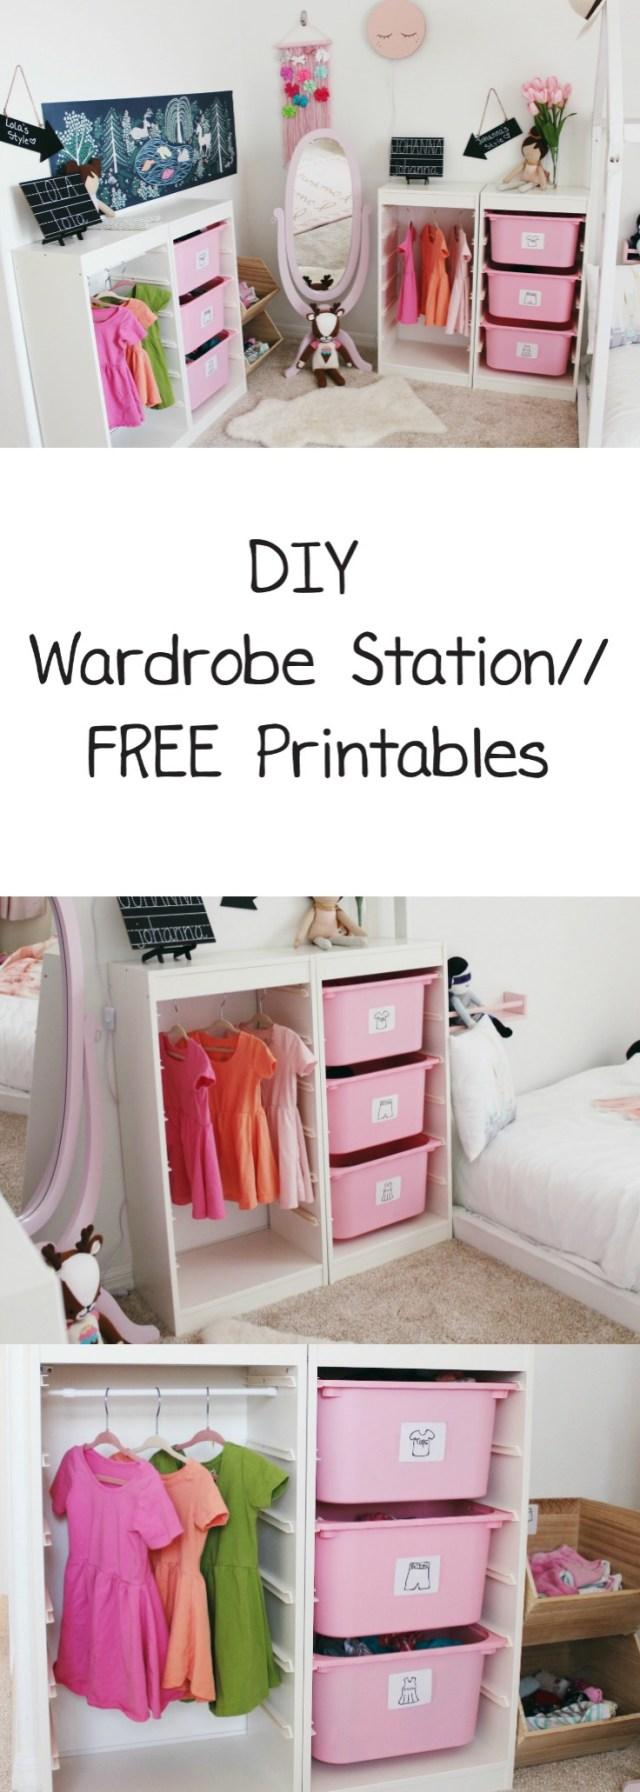 Need to Organize your kids clothes? Florida Motherhood blogger, Oh Happy Play, shares this easy tutorial for a DIY Wardrobe Station!